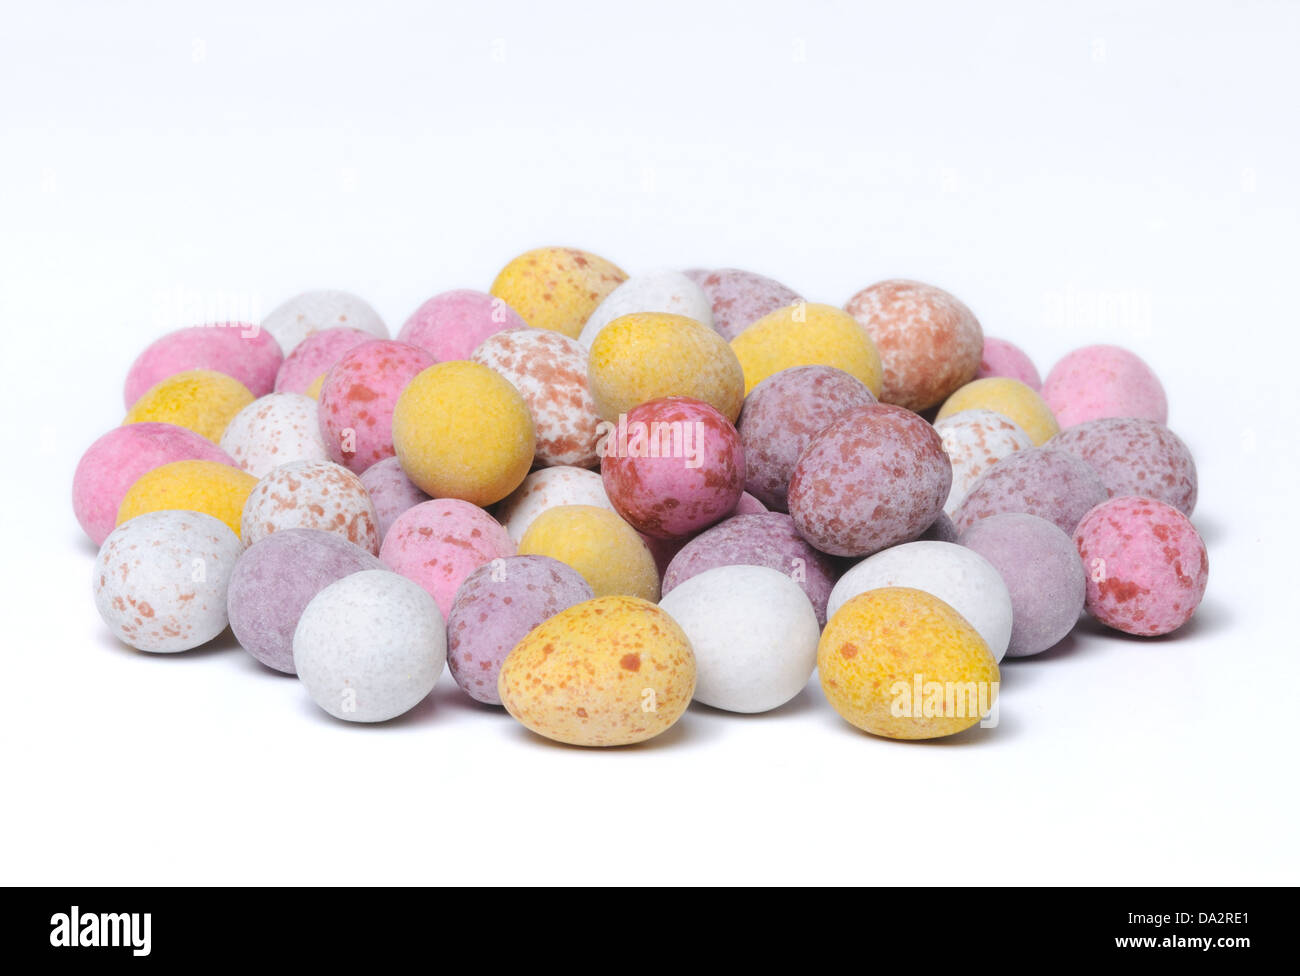 A shot of a pile of mini chocolate easter eggs on a plain white background. Stock Photo